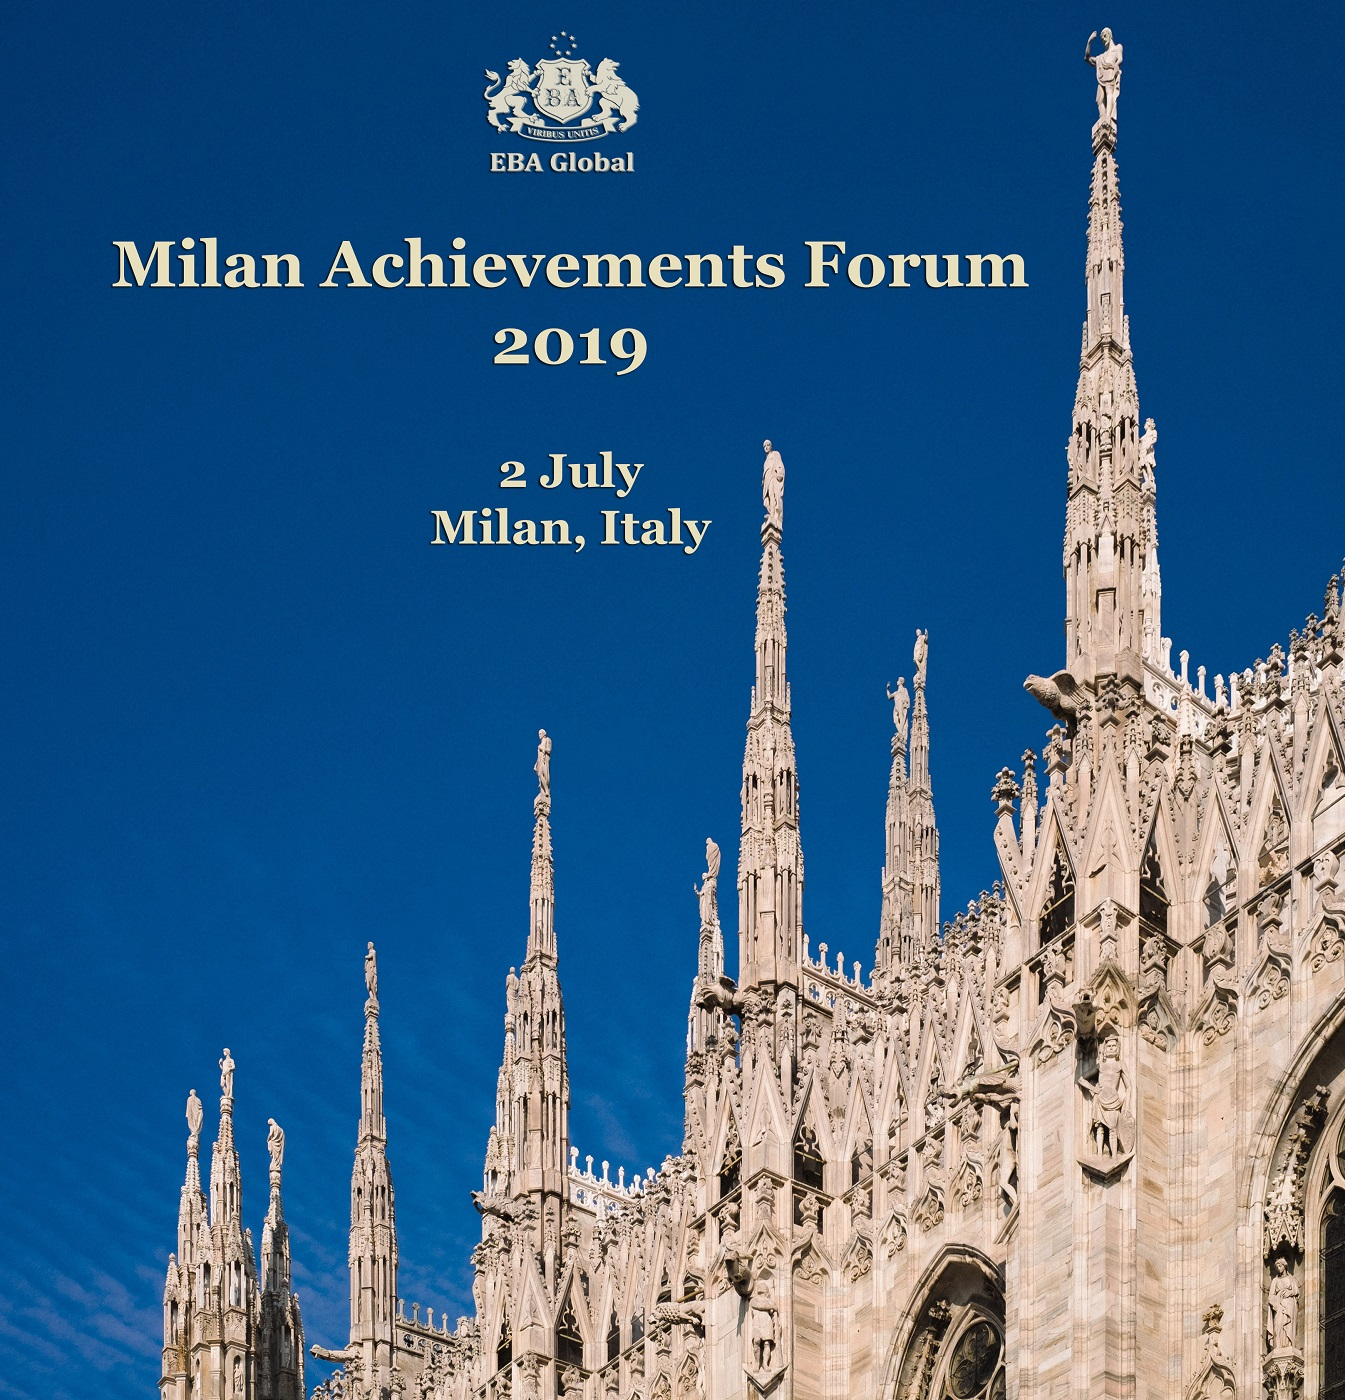 Milan Achievements Forum